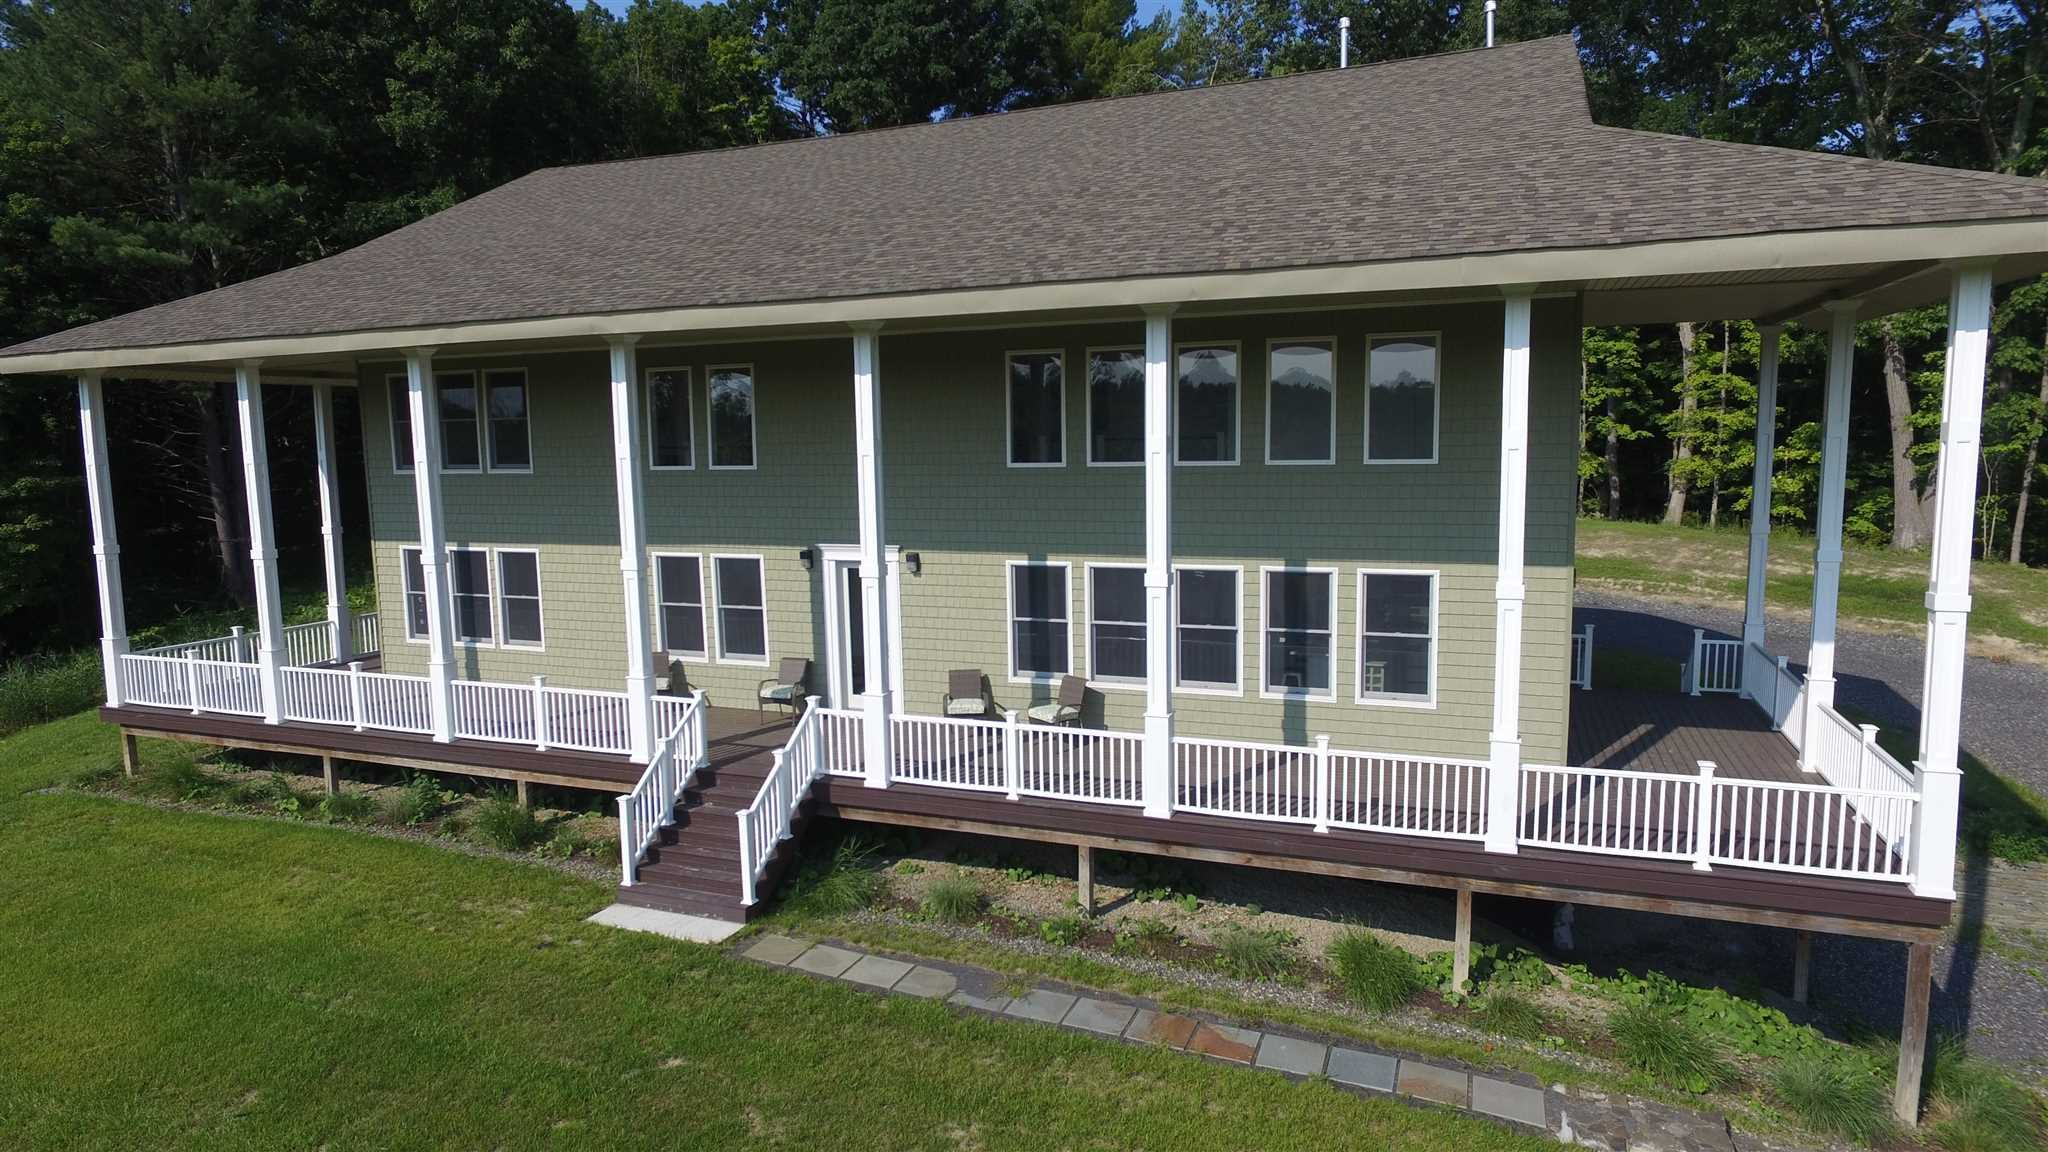 Single Family Home for Sale at 289 DALES BRIDGE Road 289 DALES BRIDGE Road Clermont, New York 12526 United States